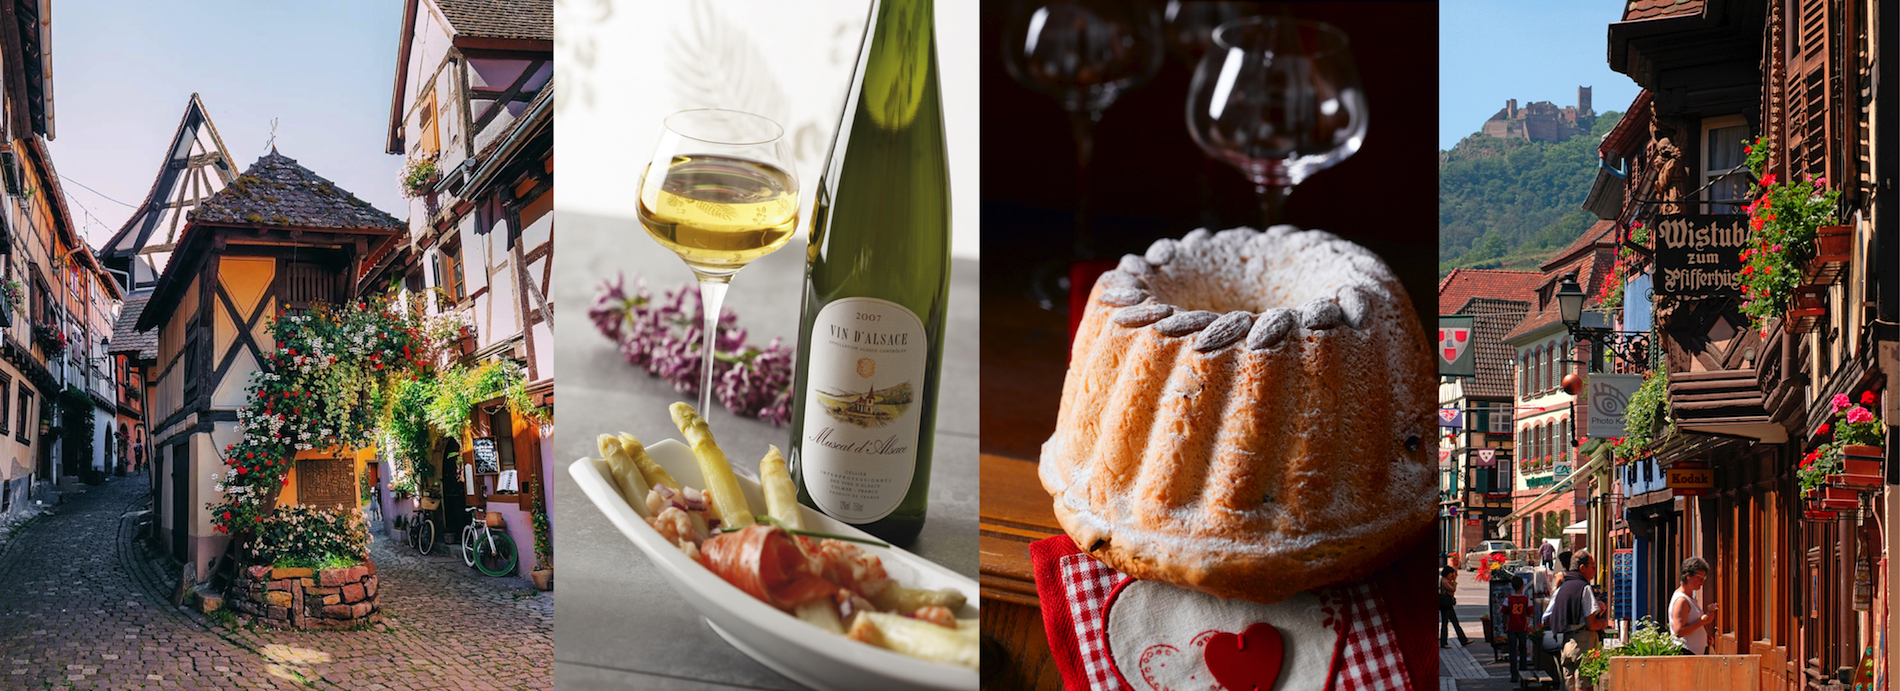 Cooking with Corinne in Alsace, Lifestyle Vacations France